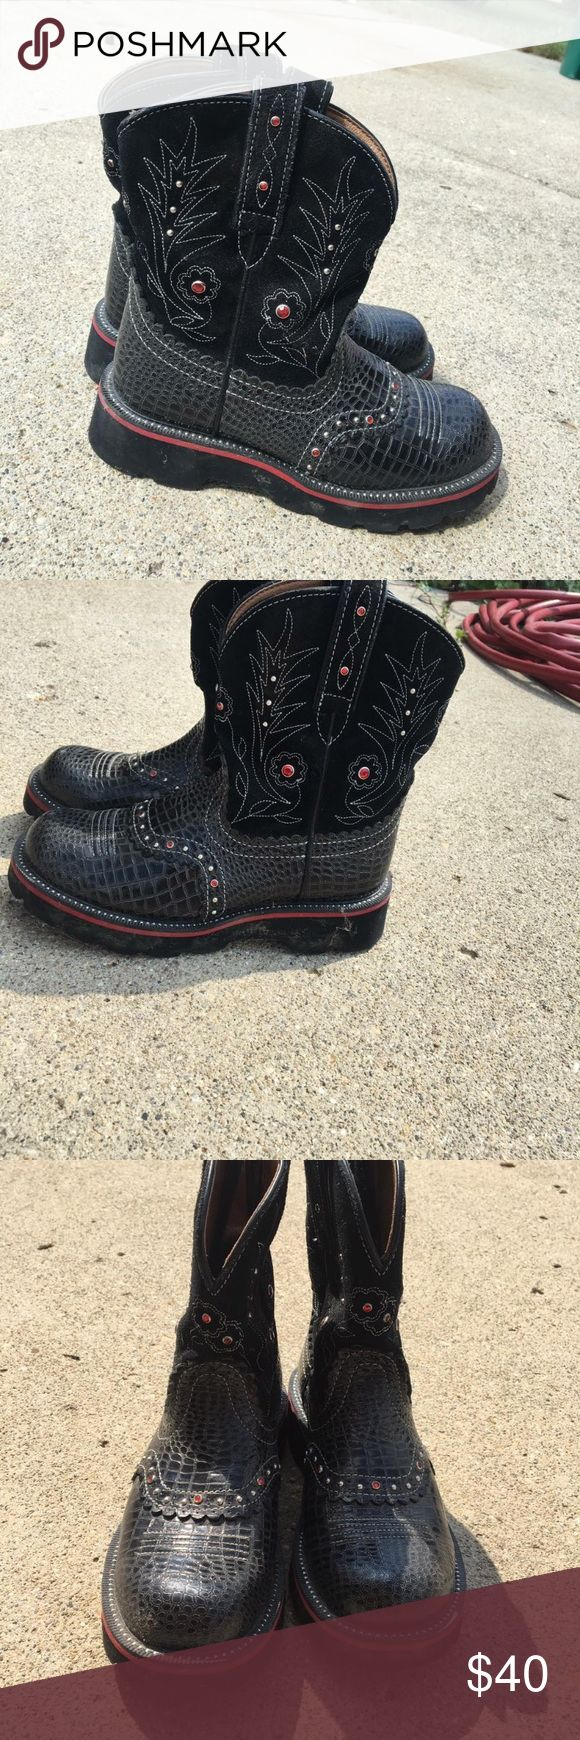 Arias FatBaby boots Ariat FatBaby Gem Baby 16405 Black Croc Leather Western Roper Boot Women 6 B Some light scuffs on toe. Ariat Shoes